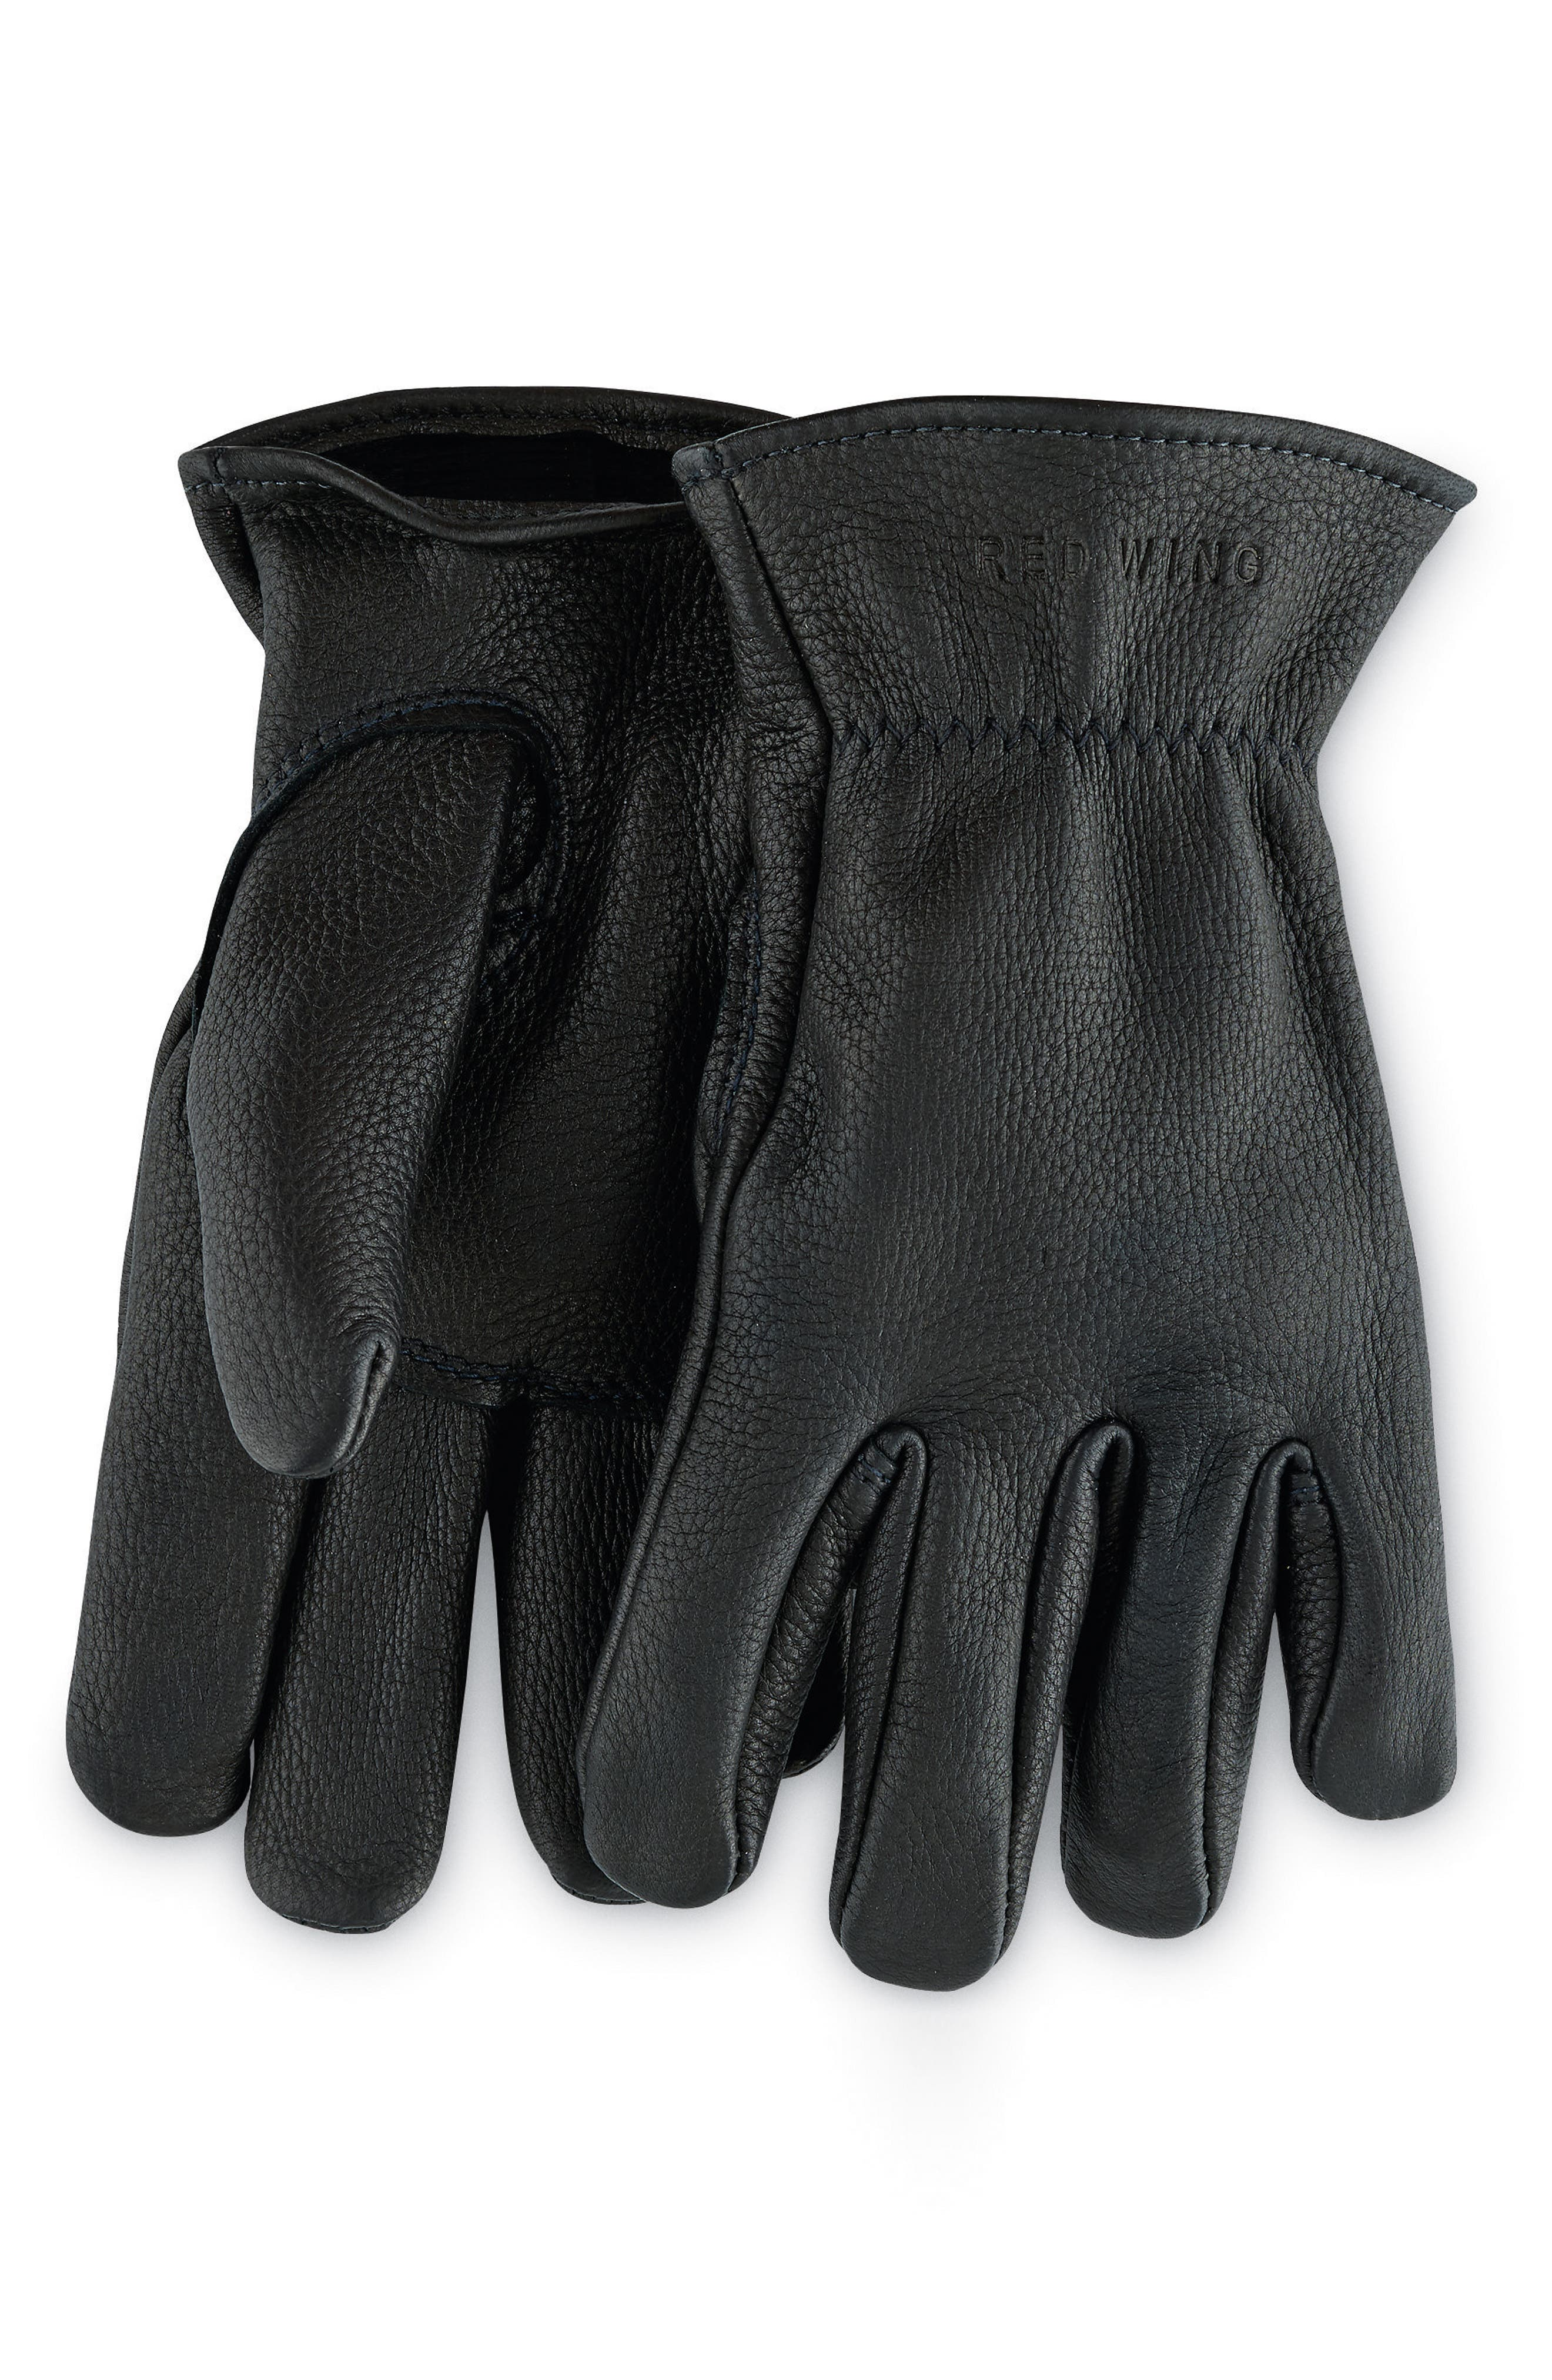 Unlined Leather Gloves,                             Main thumbnail 1, color,                             BLACK